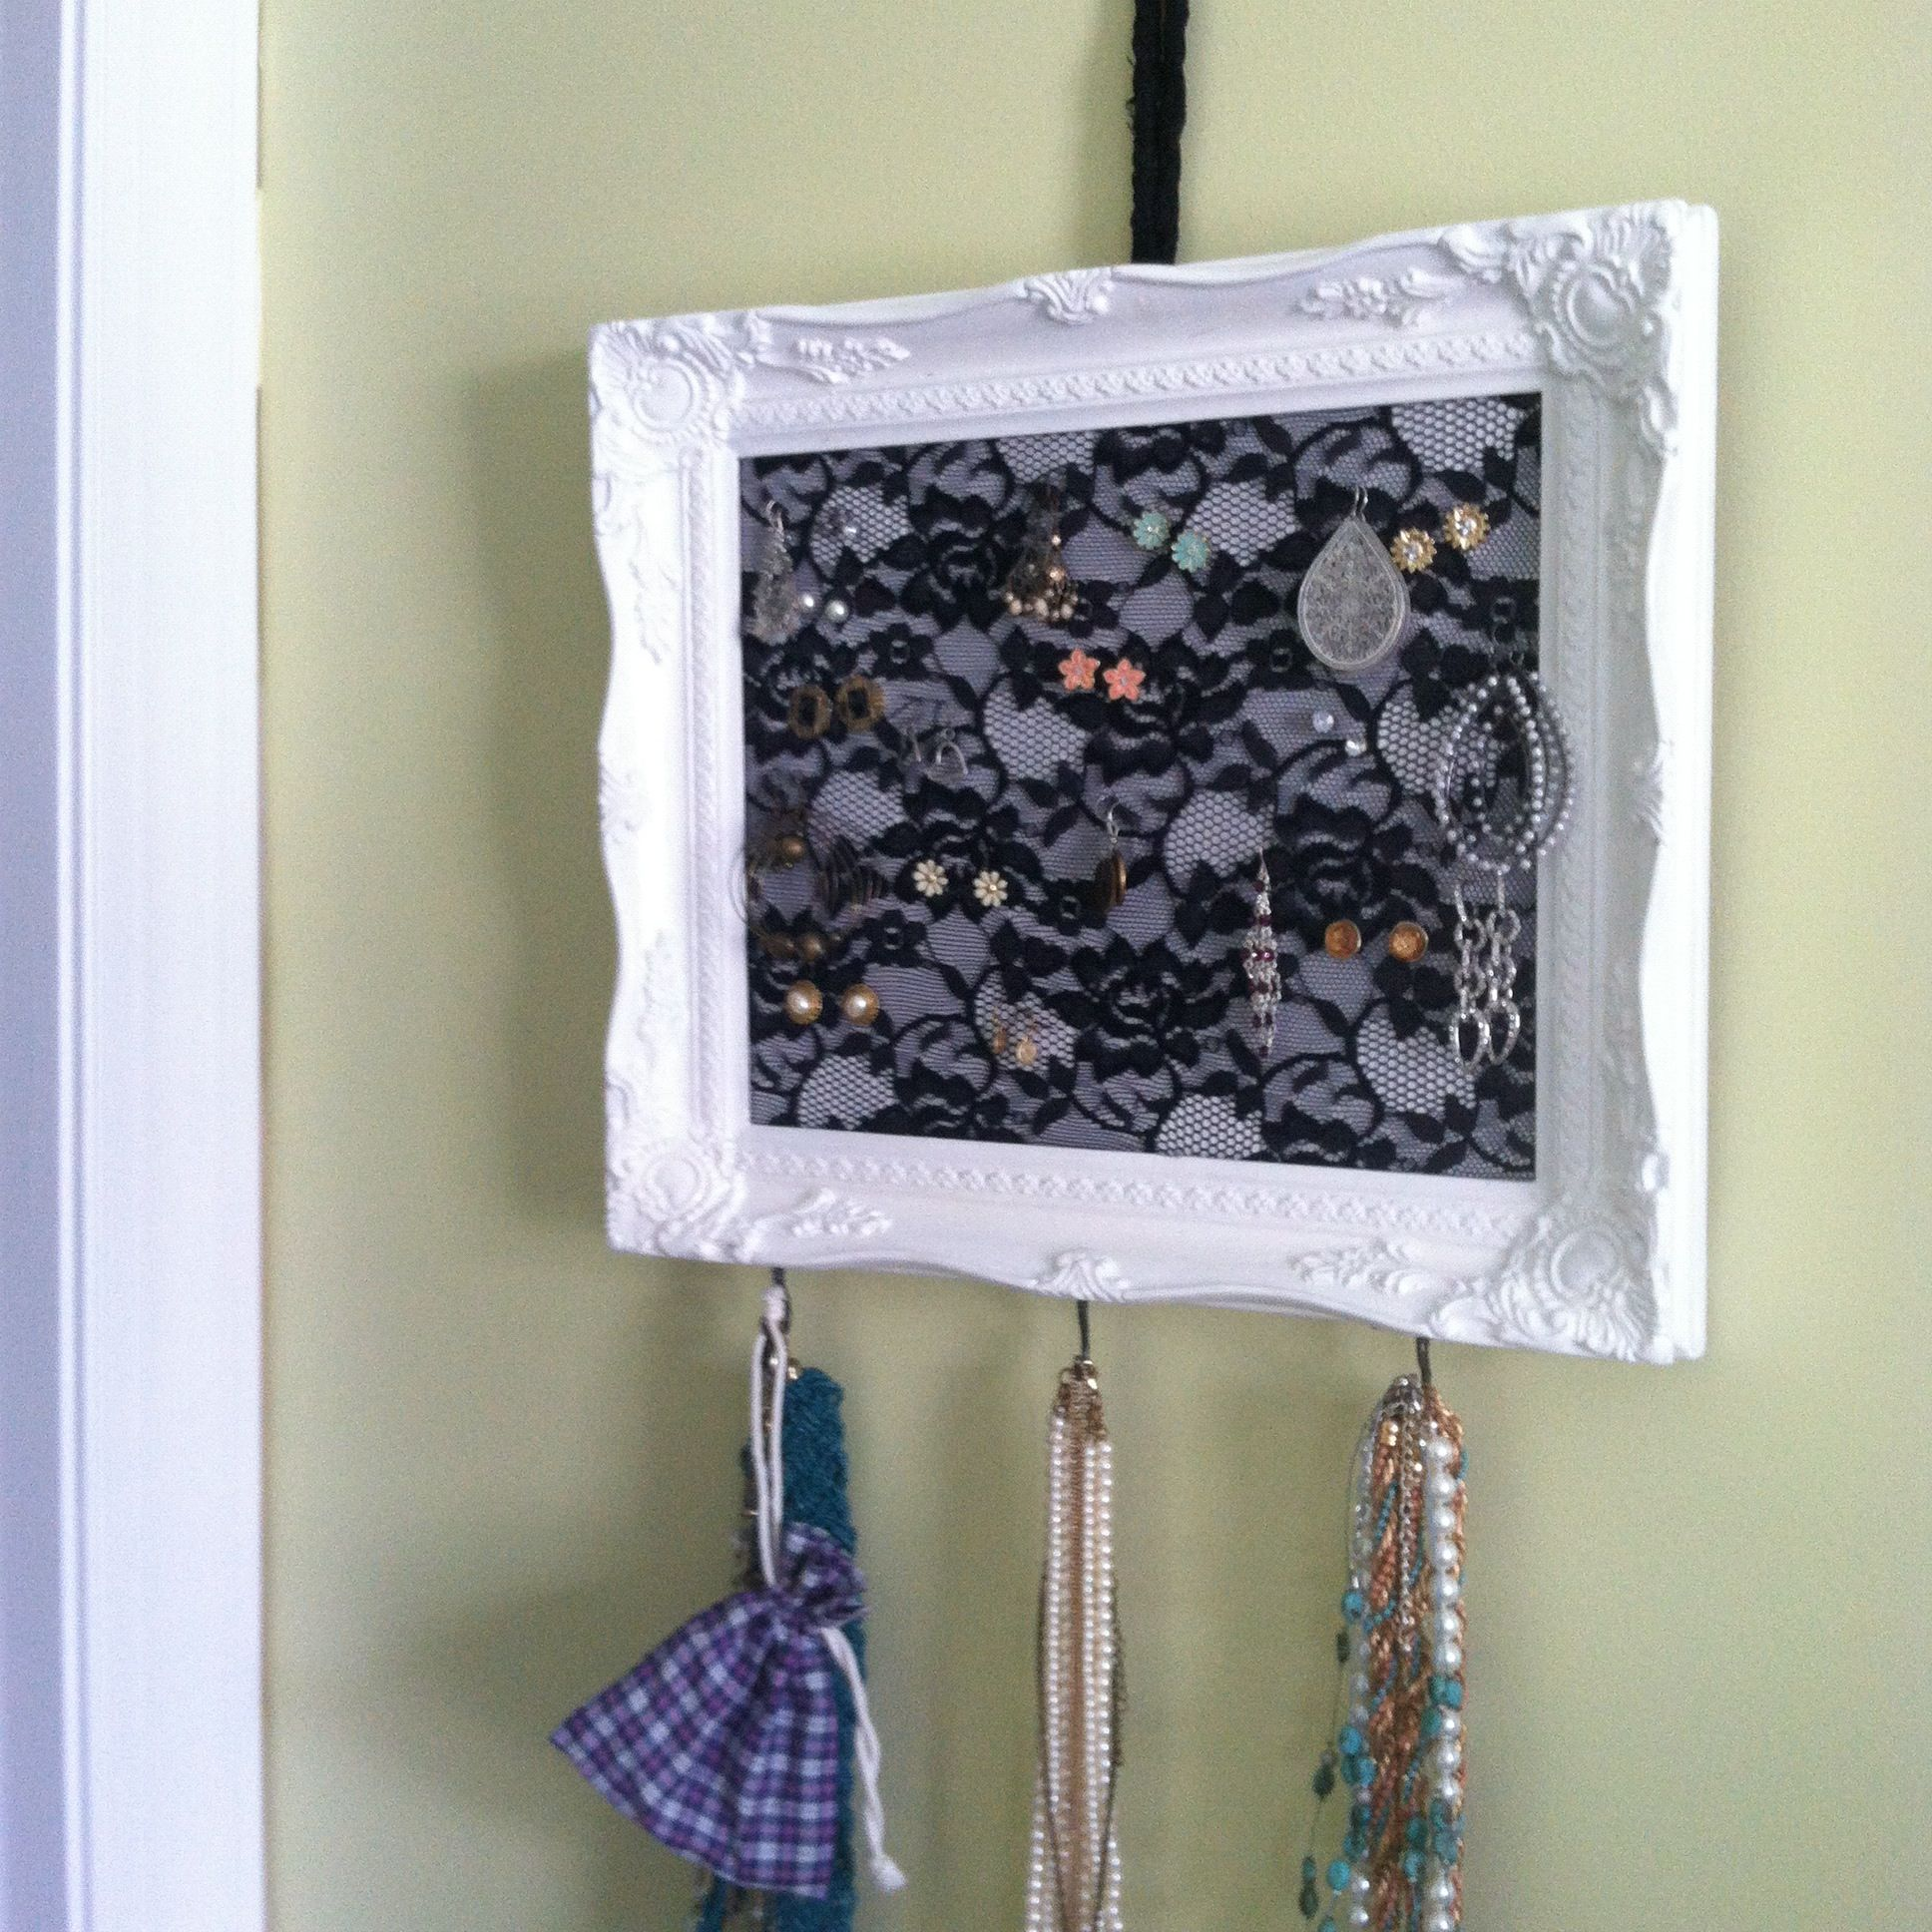 Diy Frame Jewelry Hanger With Lace And Foam Board